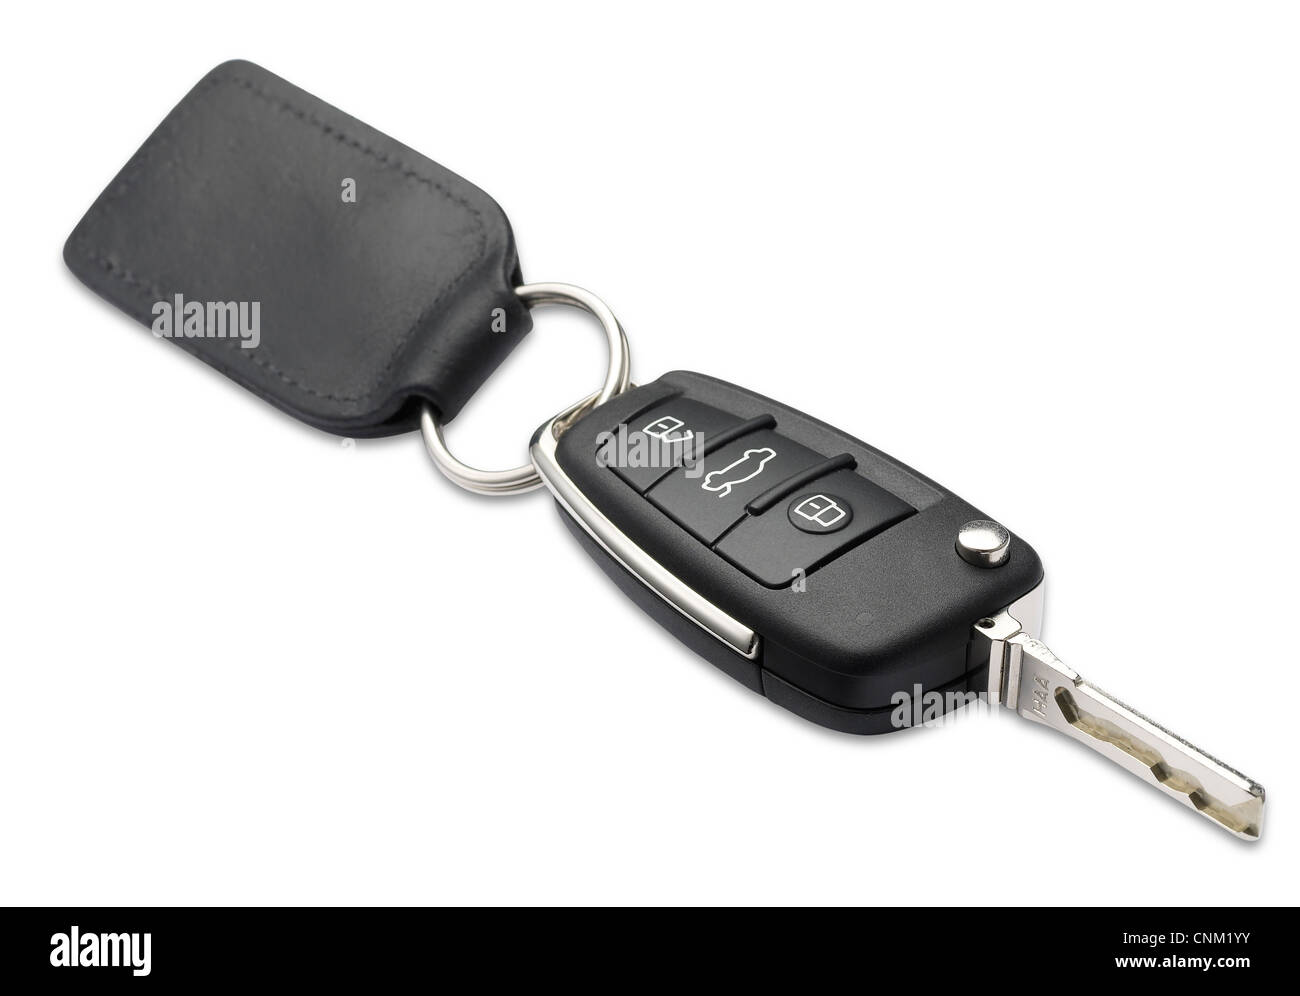 Une clé de voiture et d'une profondeur de champ on white with clipping path Photo Stock